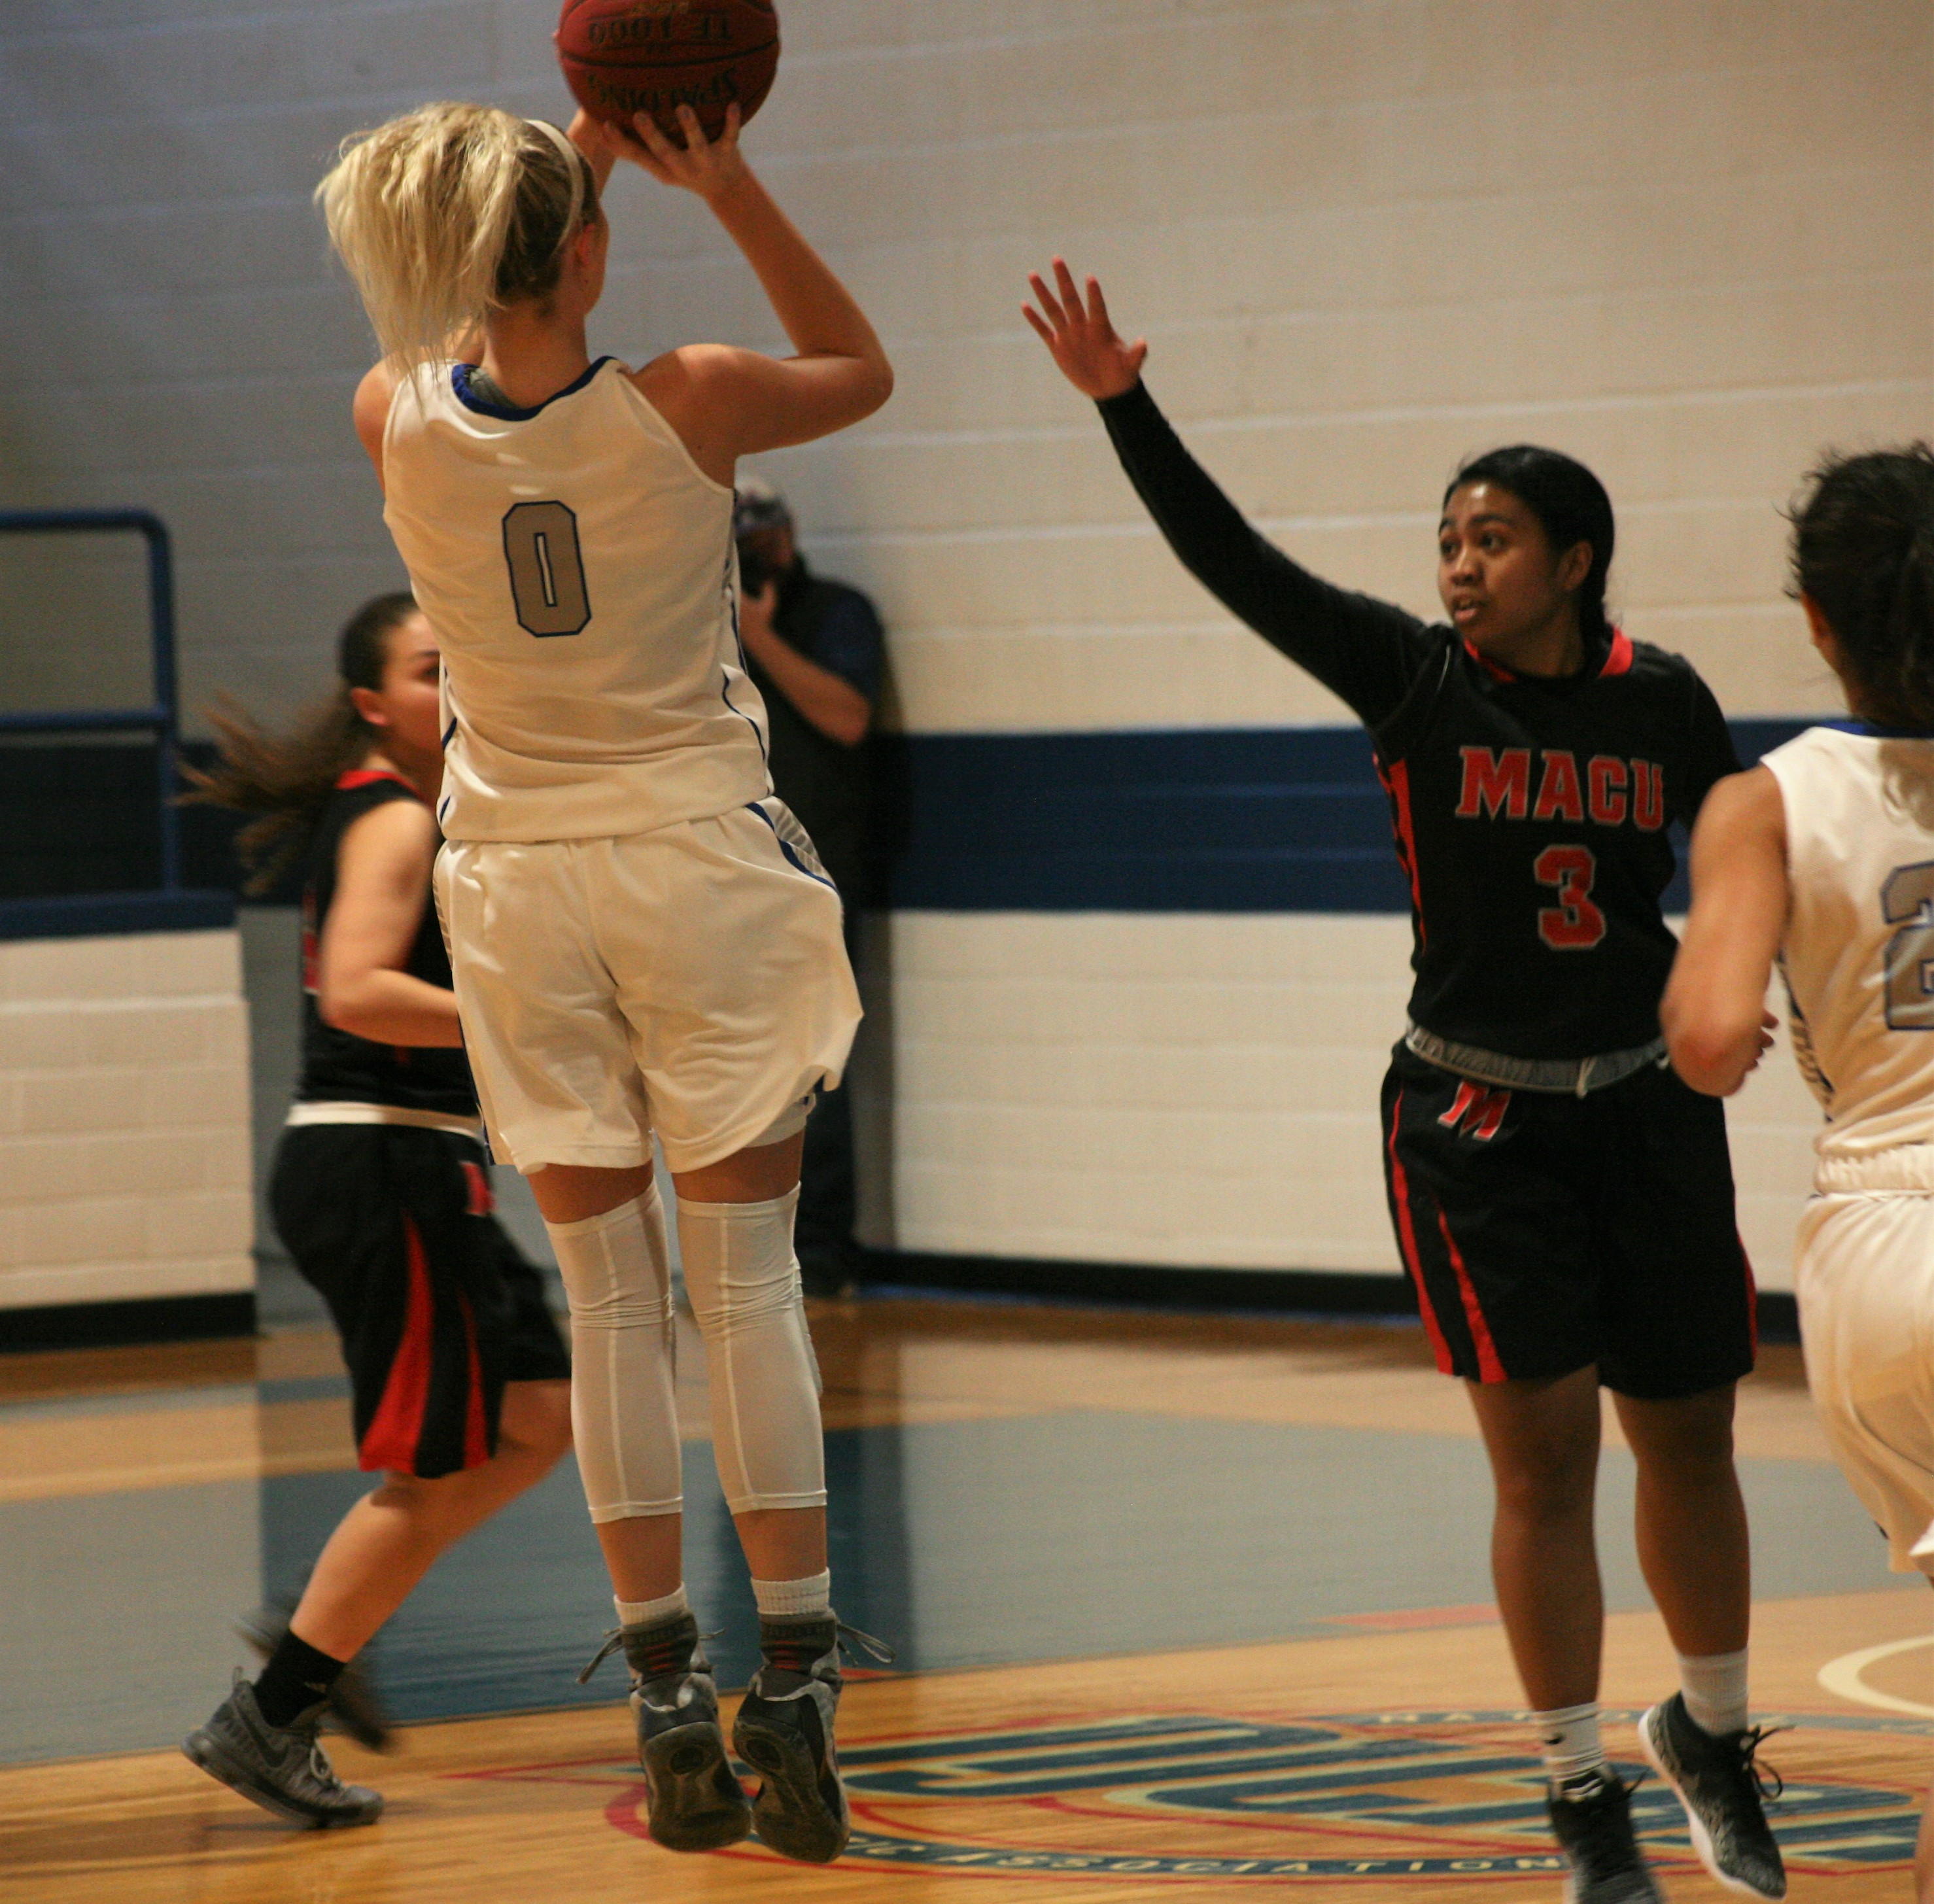 MSC womens basketball goes 1-1 on road, while men drop close game to Redlands last week